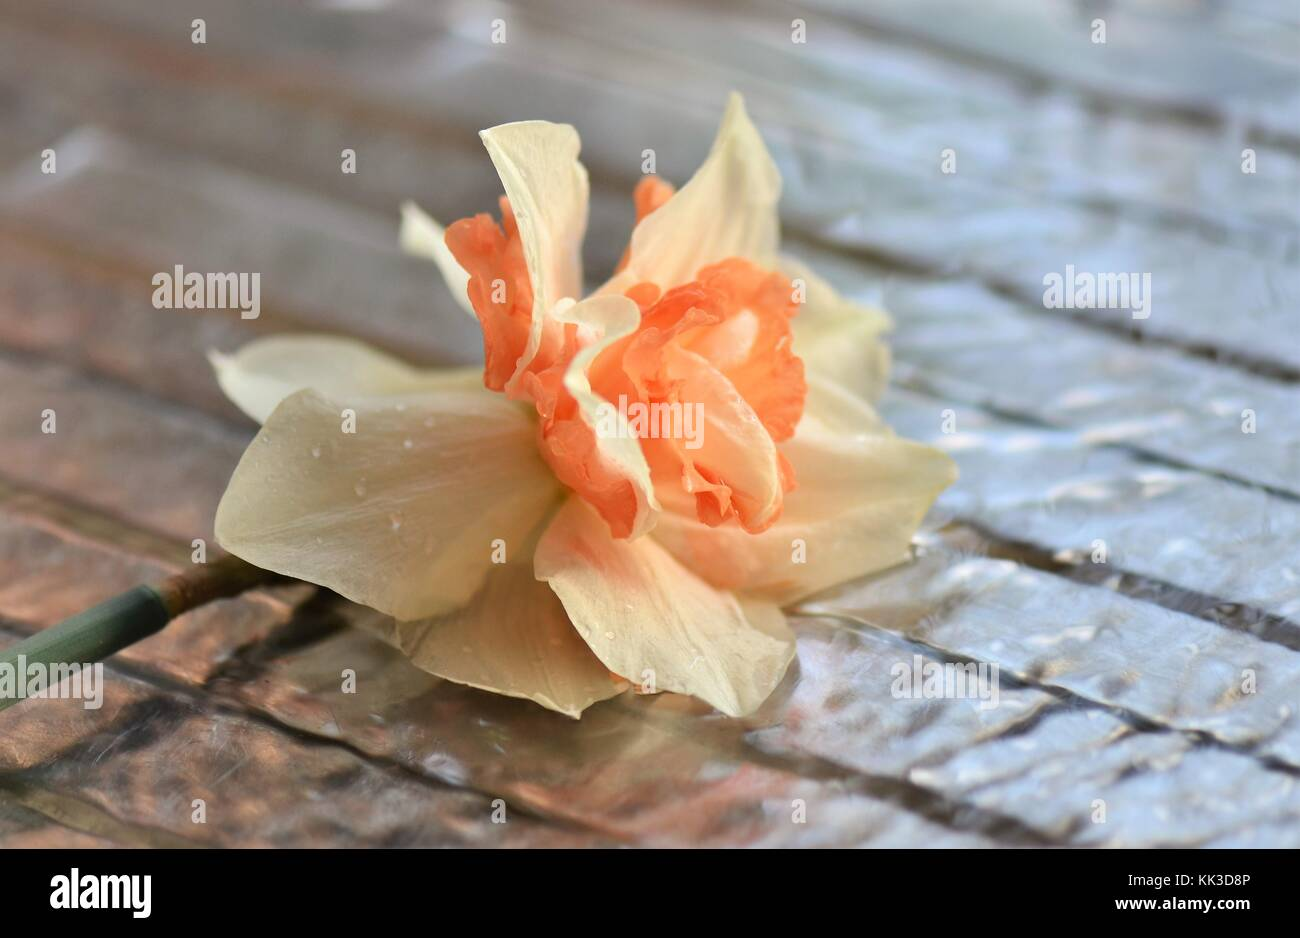 Cut springtime Daffodil laying on a draining board in running water - Stock Image